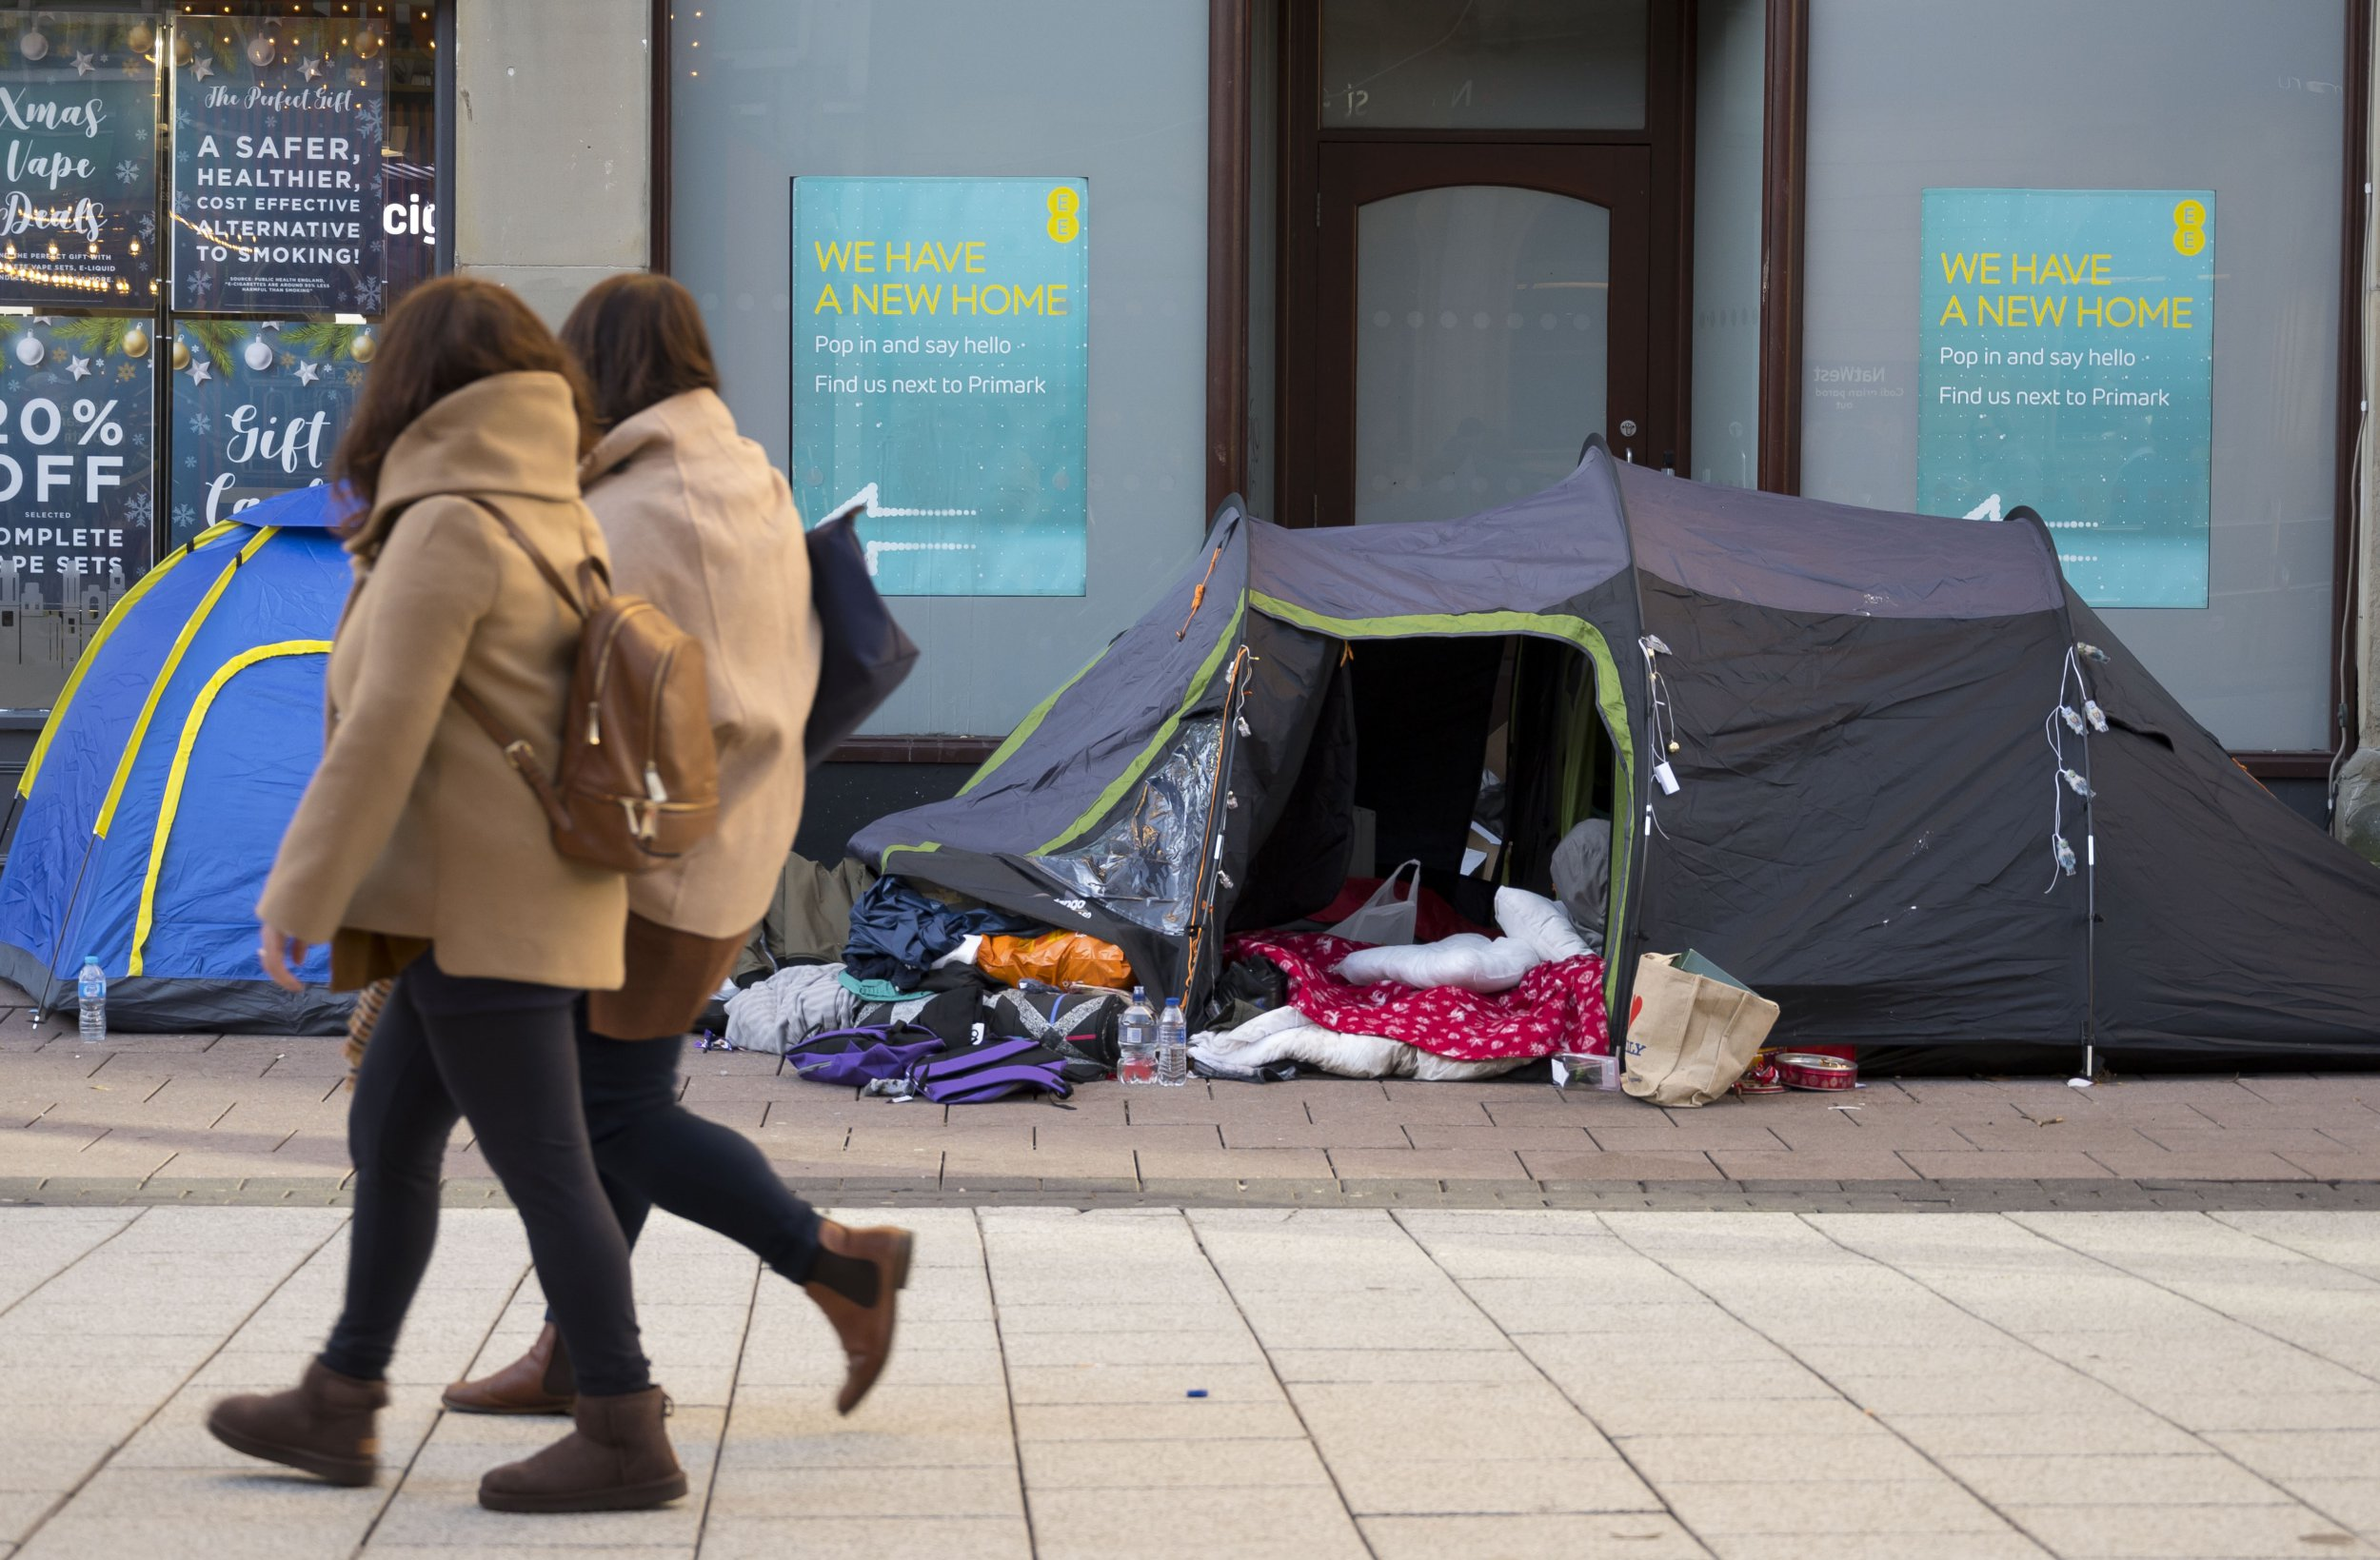 CARDIFF, WALES - DECEMBER 27: Shoppers walk passed tents on Queen Street on December 27, 2018 in Cardiff, United Kingdom. A large number of homeless have pitched tents on the busy shopping street. Bigger discounts than normal are expected in the traditional post-Christmas sales as retailers try to make up for weak trading in the run-up to Christmas. (Photo by Matthew Horwood/Getty Images)